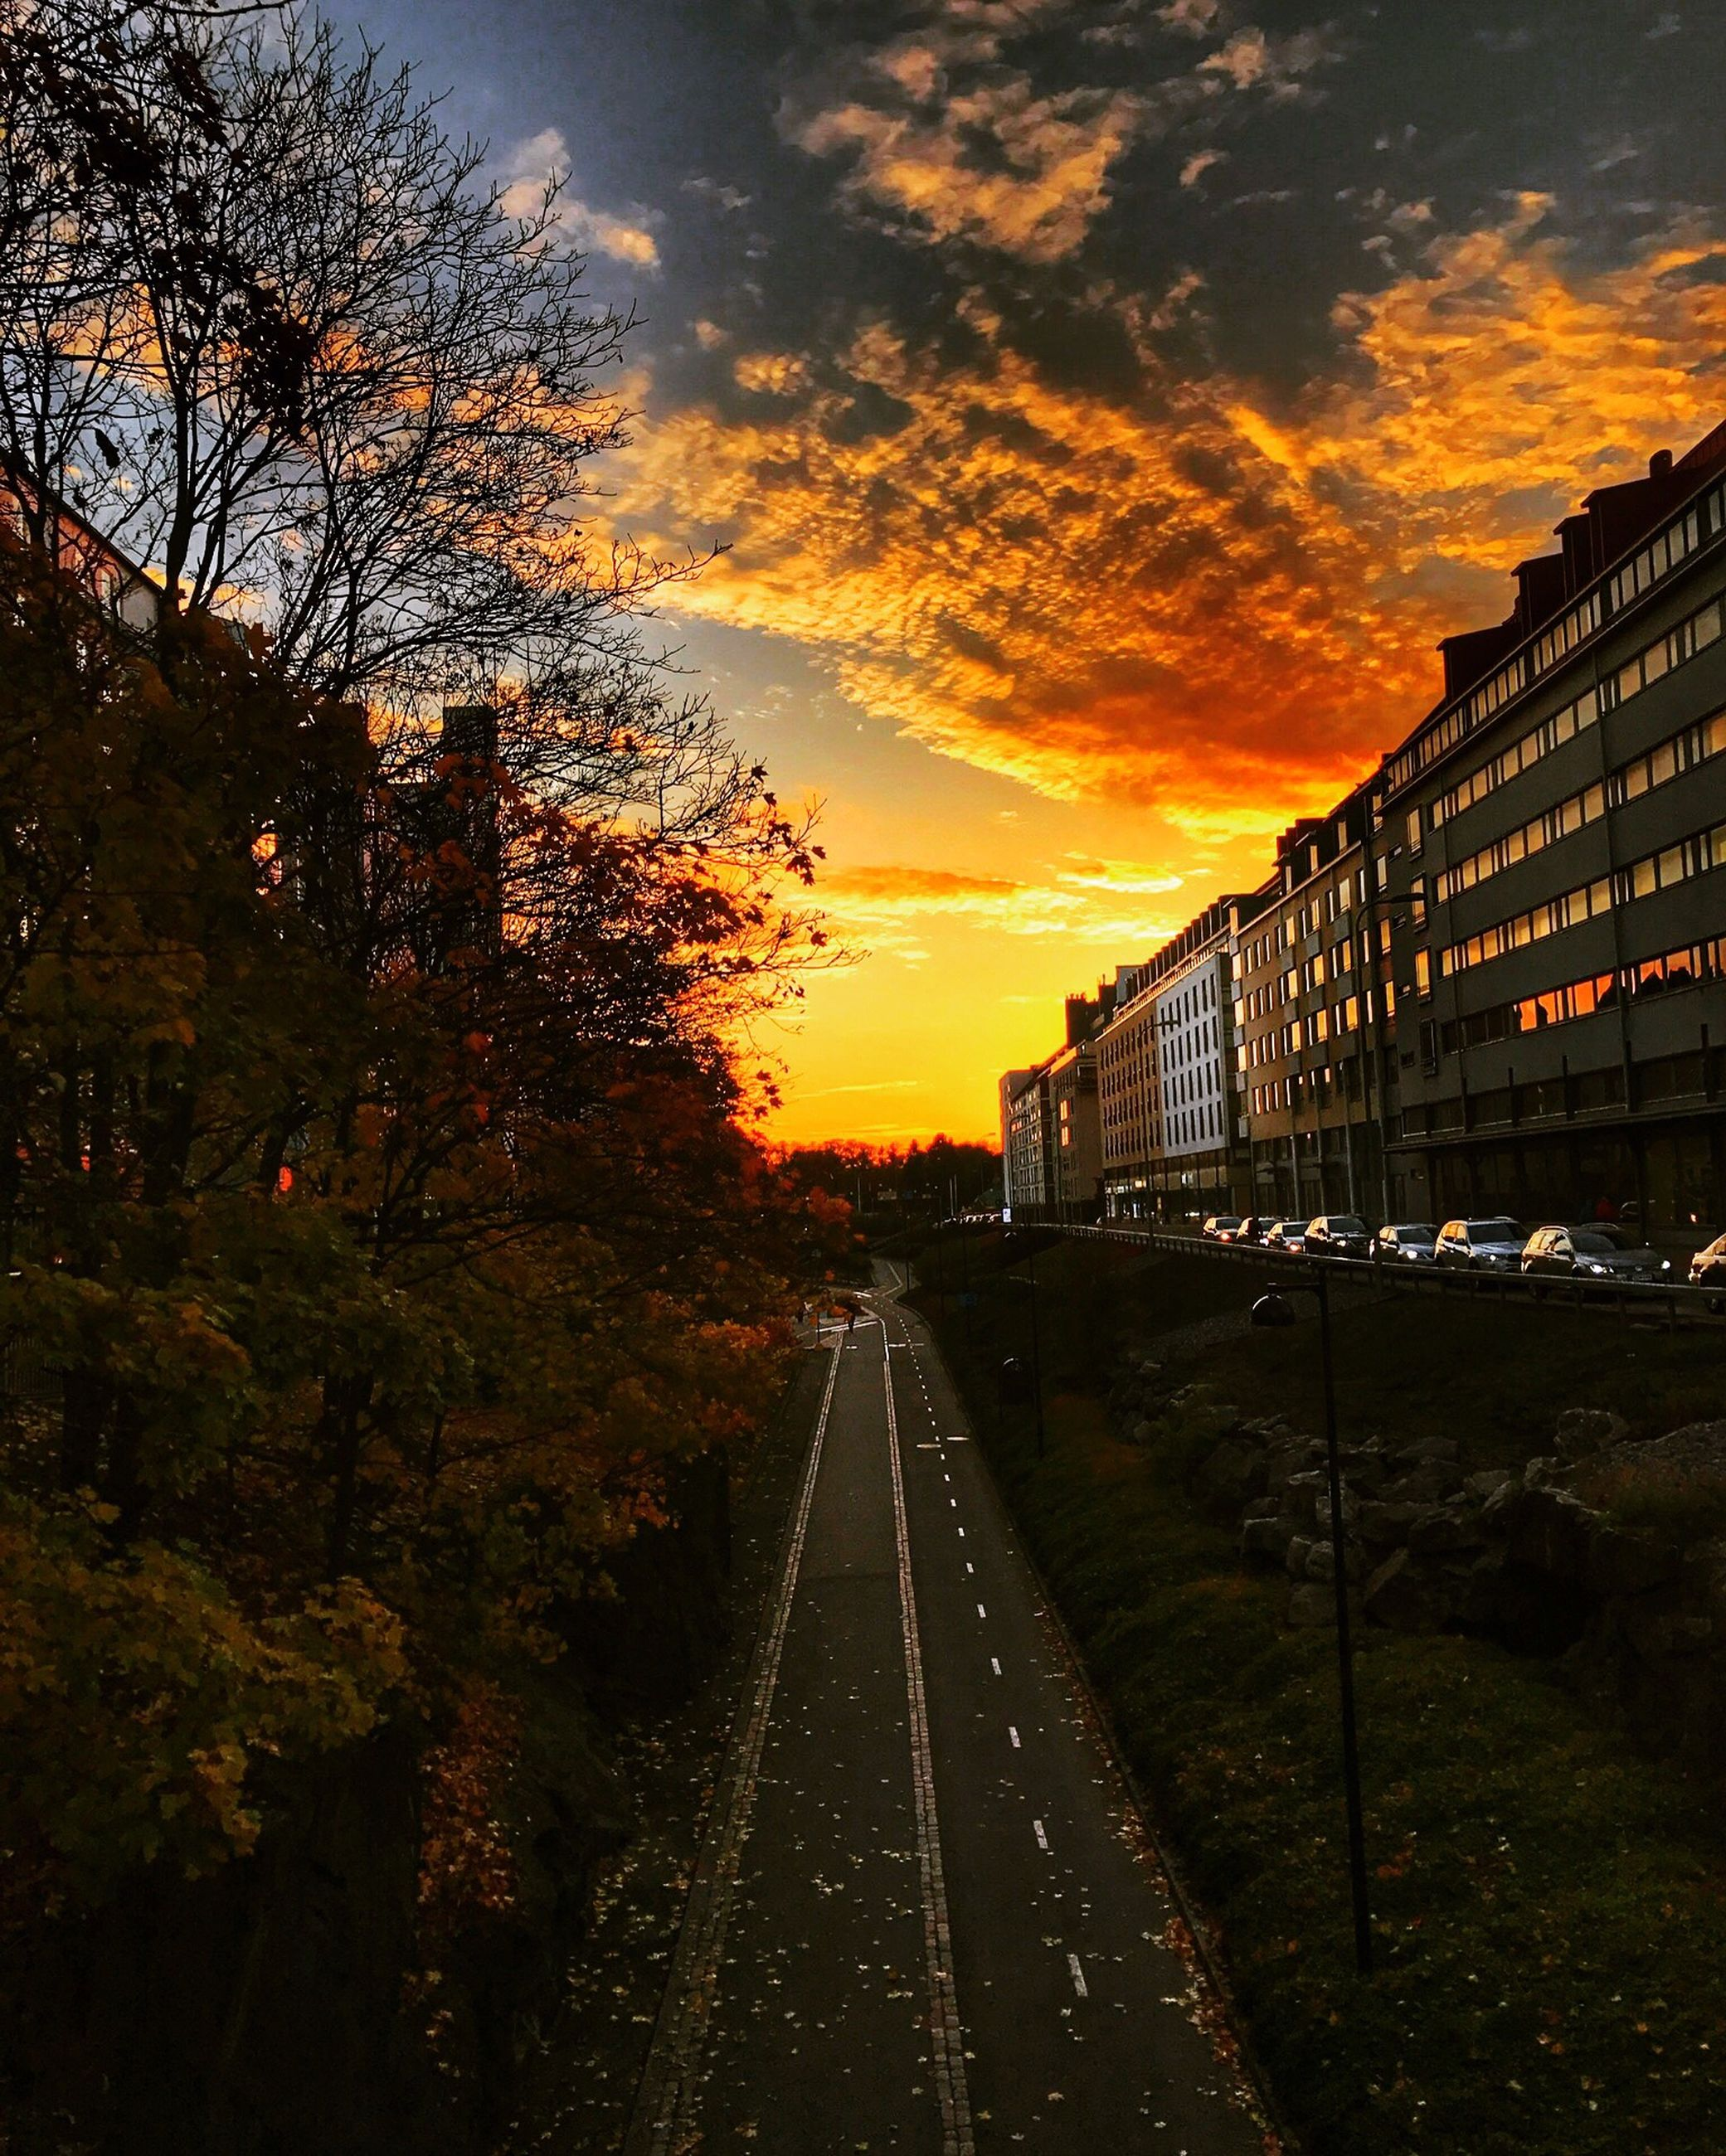 sunset, transportation, rail transportation, tree, the way forward, sky, cloud - sky, no people, outdoors, nature, architecture, day